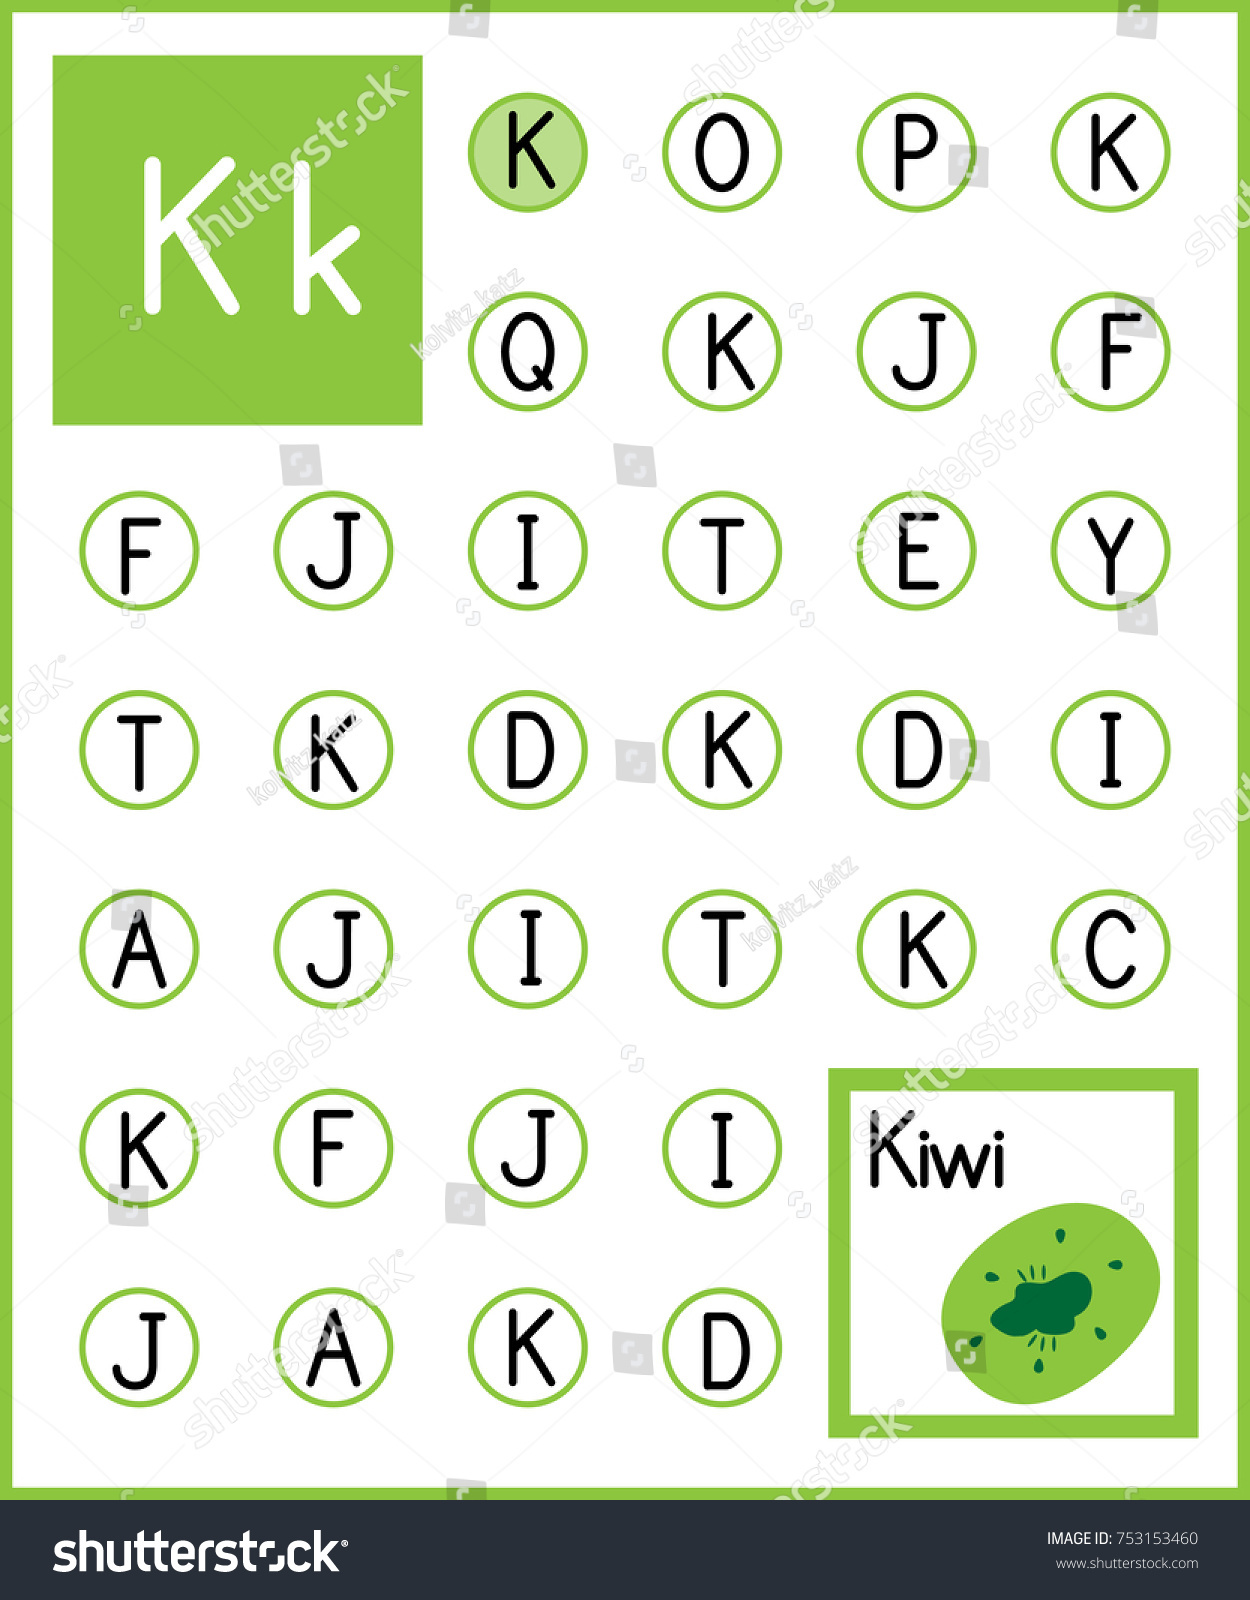 Worksheet Alphabet Activity Pre Schoolers Kindergarten Stock Worksheet Best Free Printable